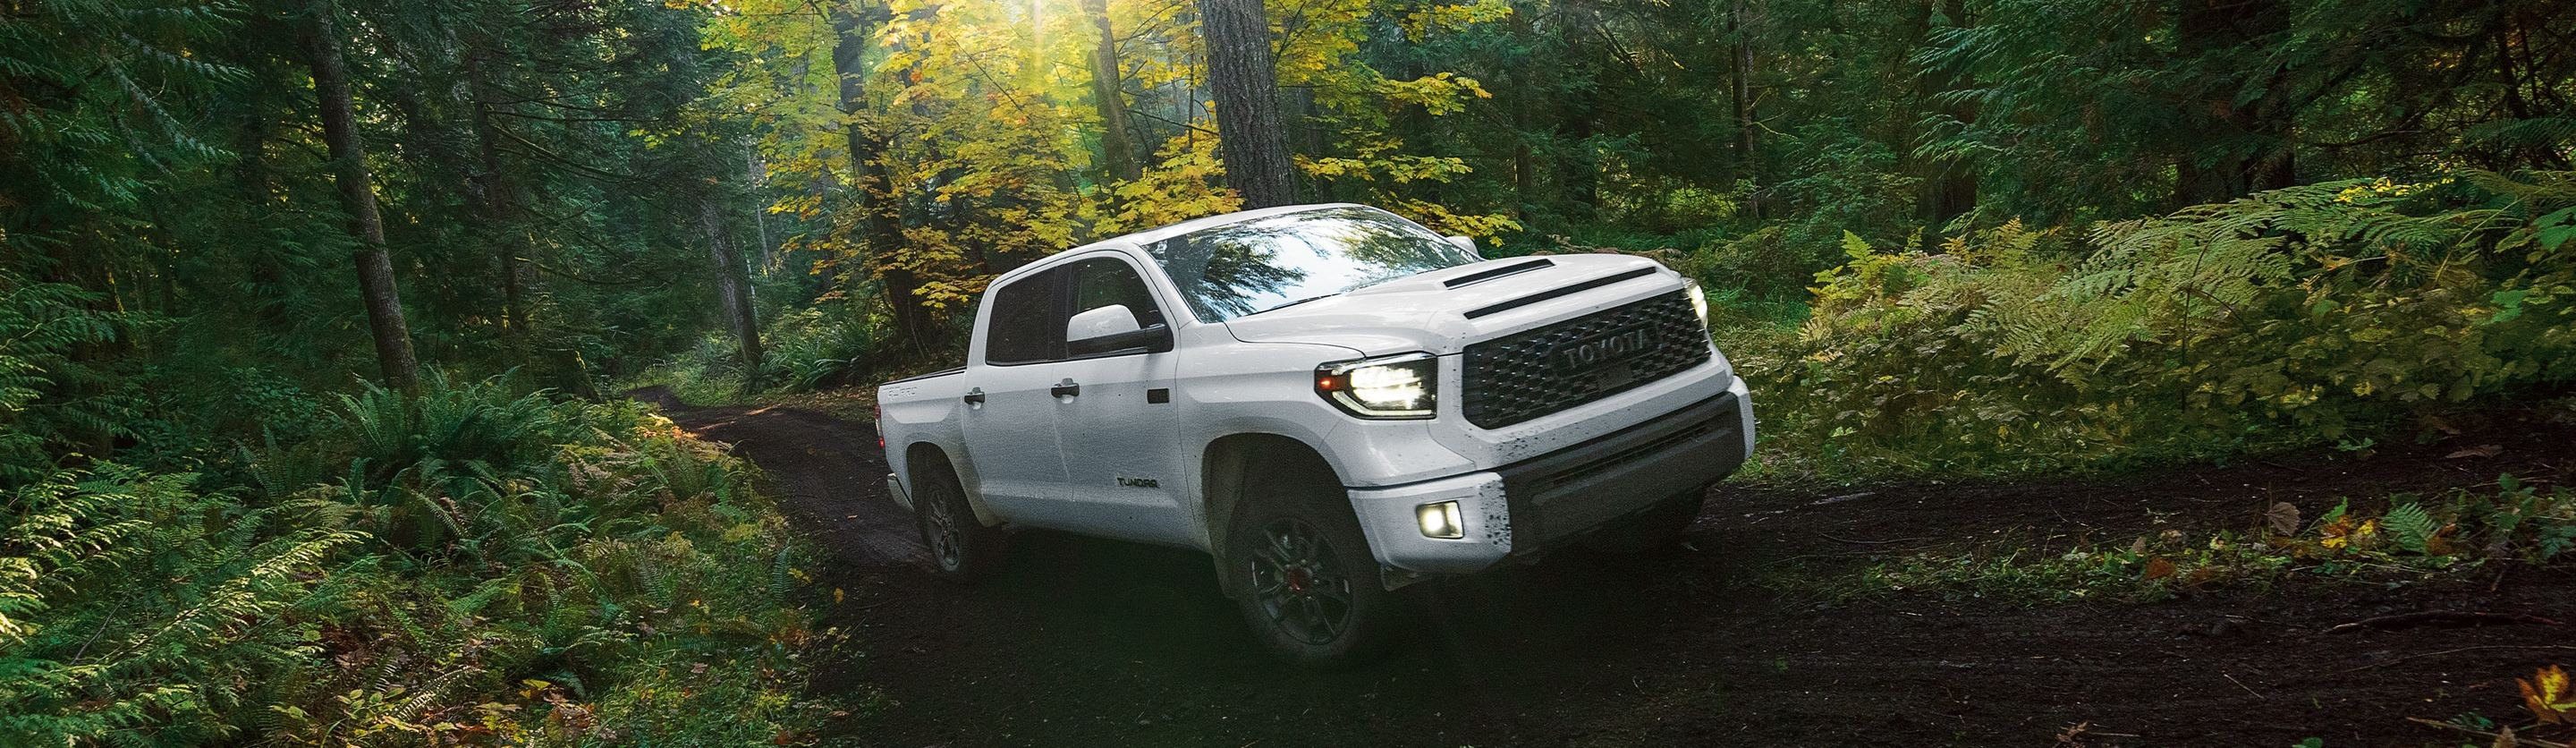 2020 Toyota Tundra for Sale near Ann Arbor, MI